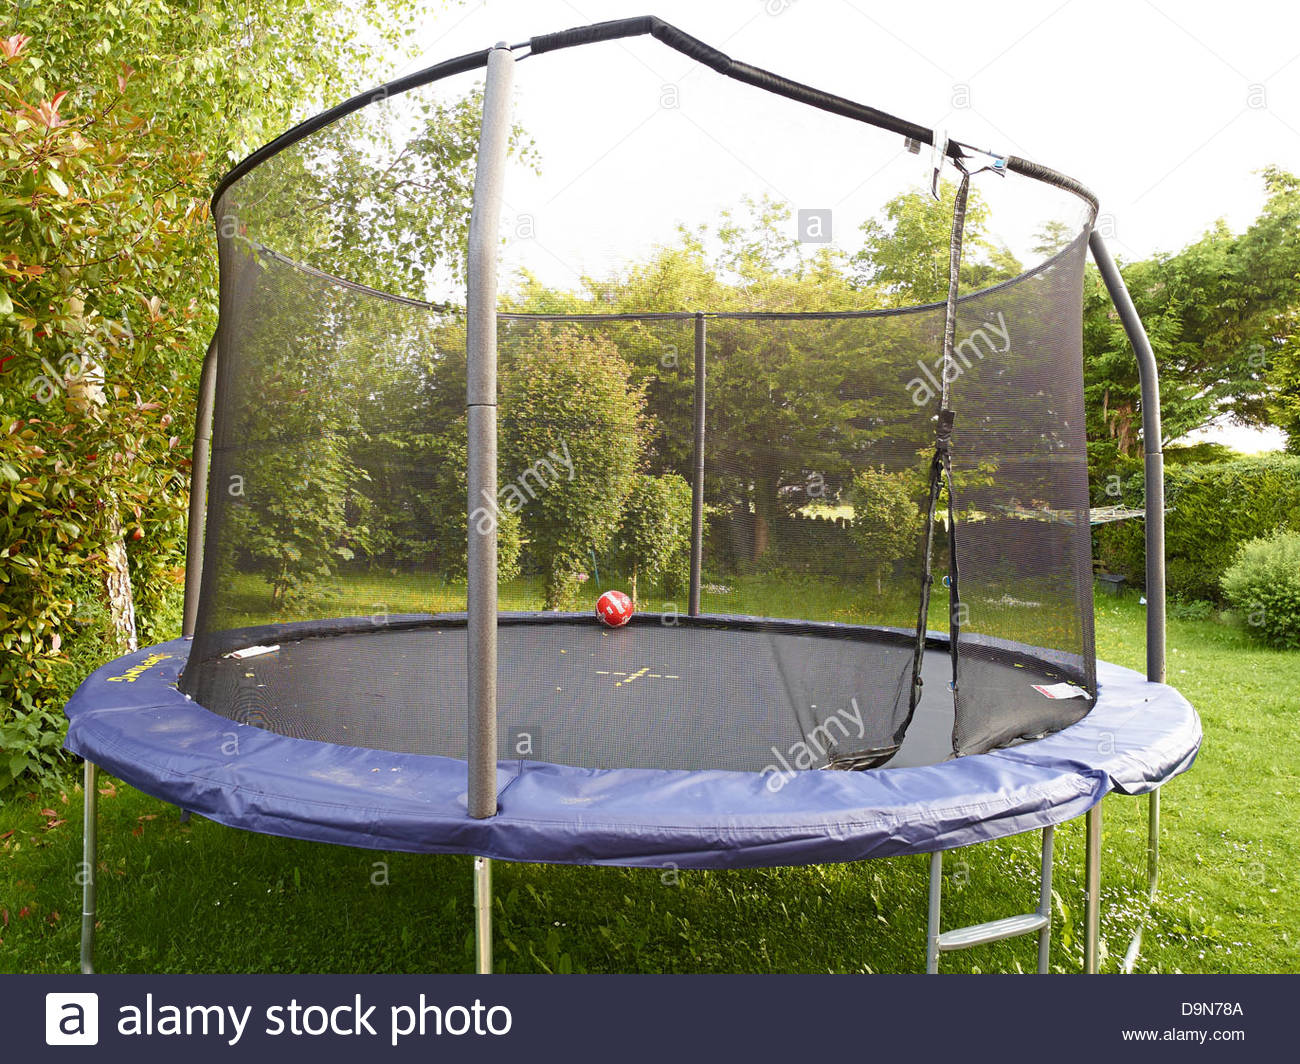 Football On A Garden Trampoline With A Safety Net At Dusk In The Summer In  Oxfordshire England UK